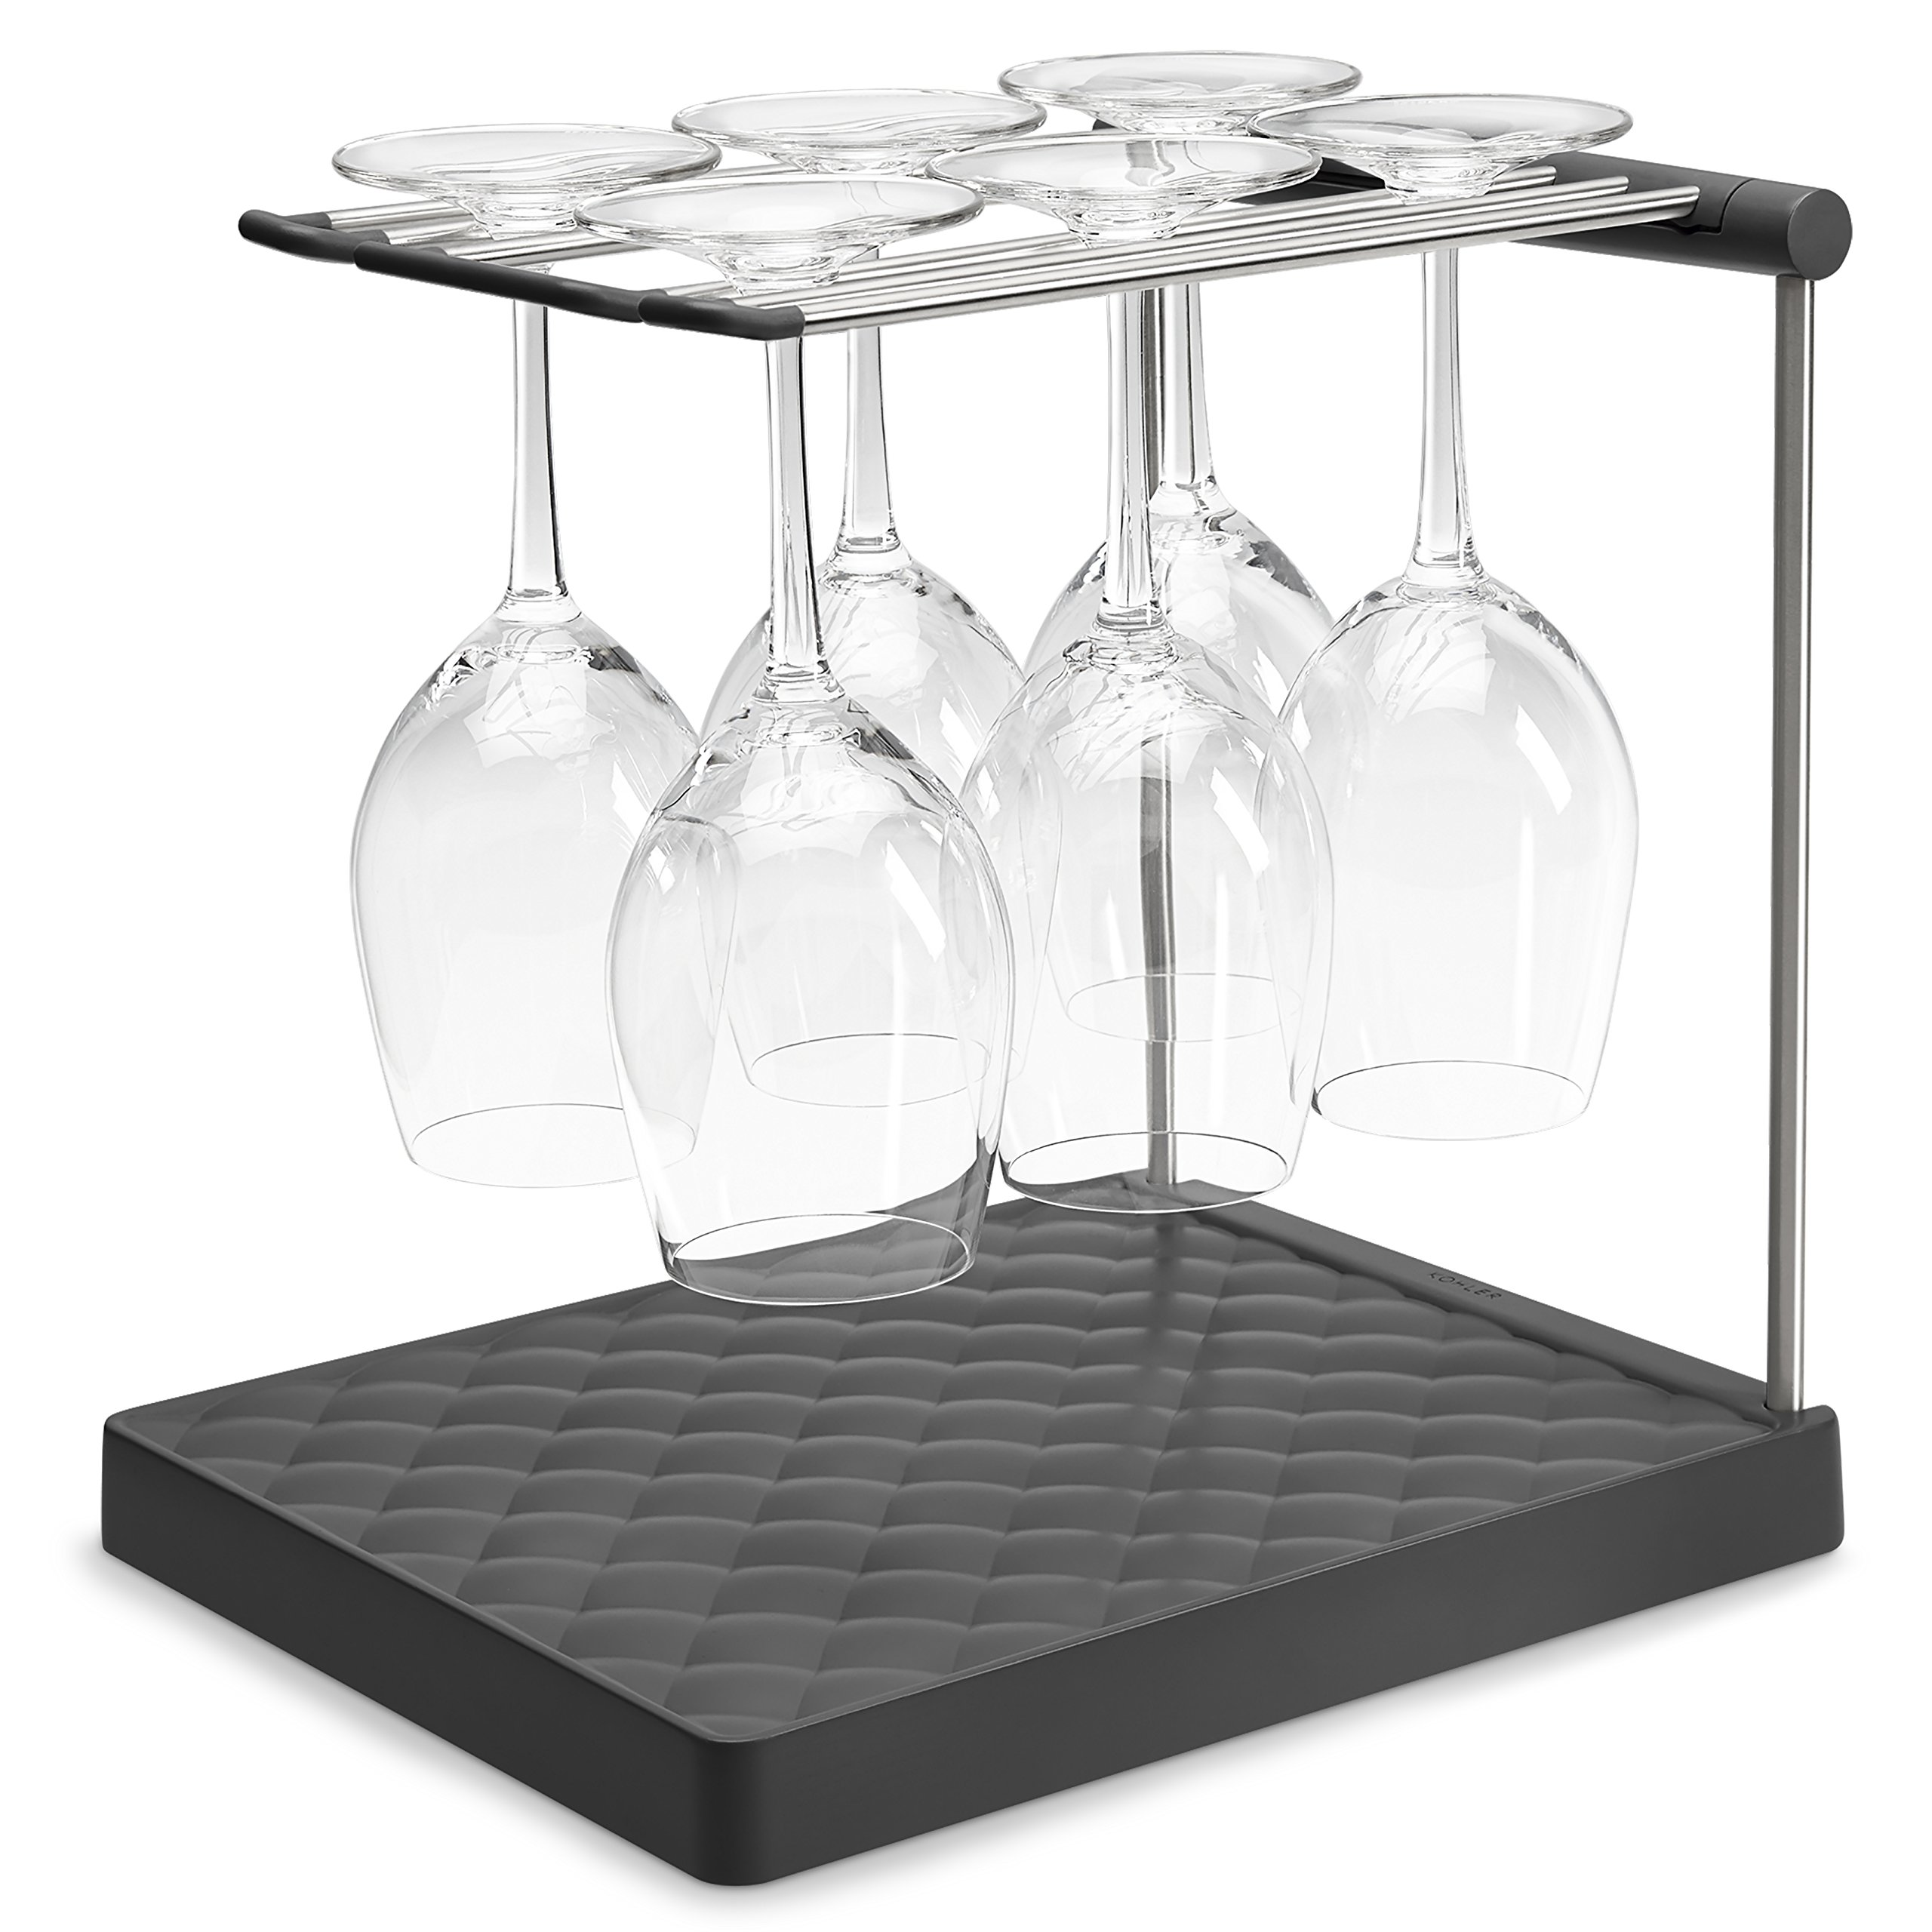 KOHLER Collapsible Wine Glass Holder or Drying Rack. Collapsible to 1.25'', Holds Up To 6 glasses, Charcoal